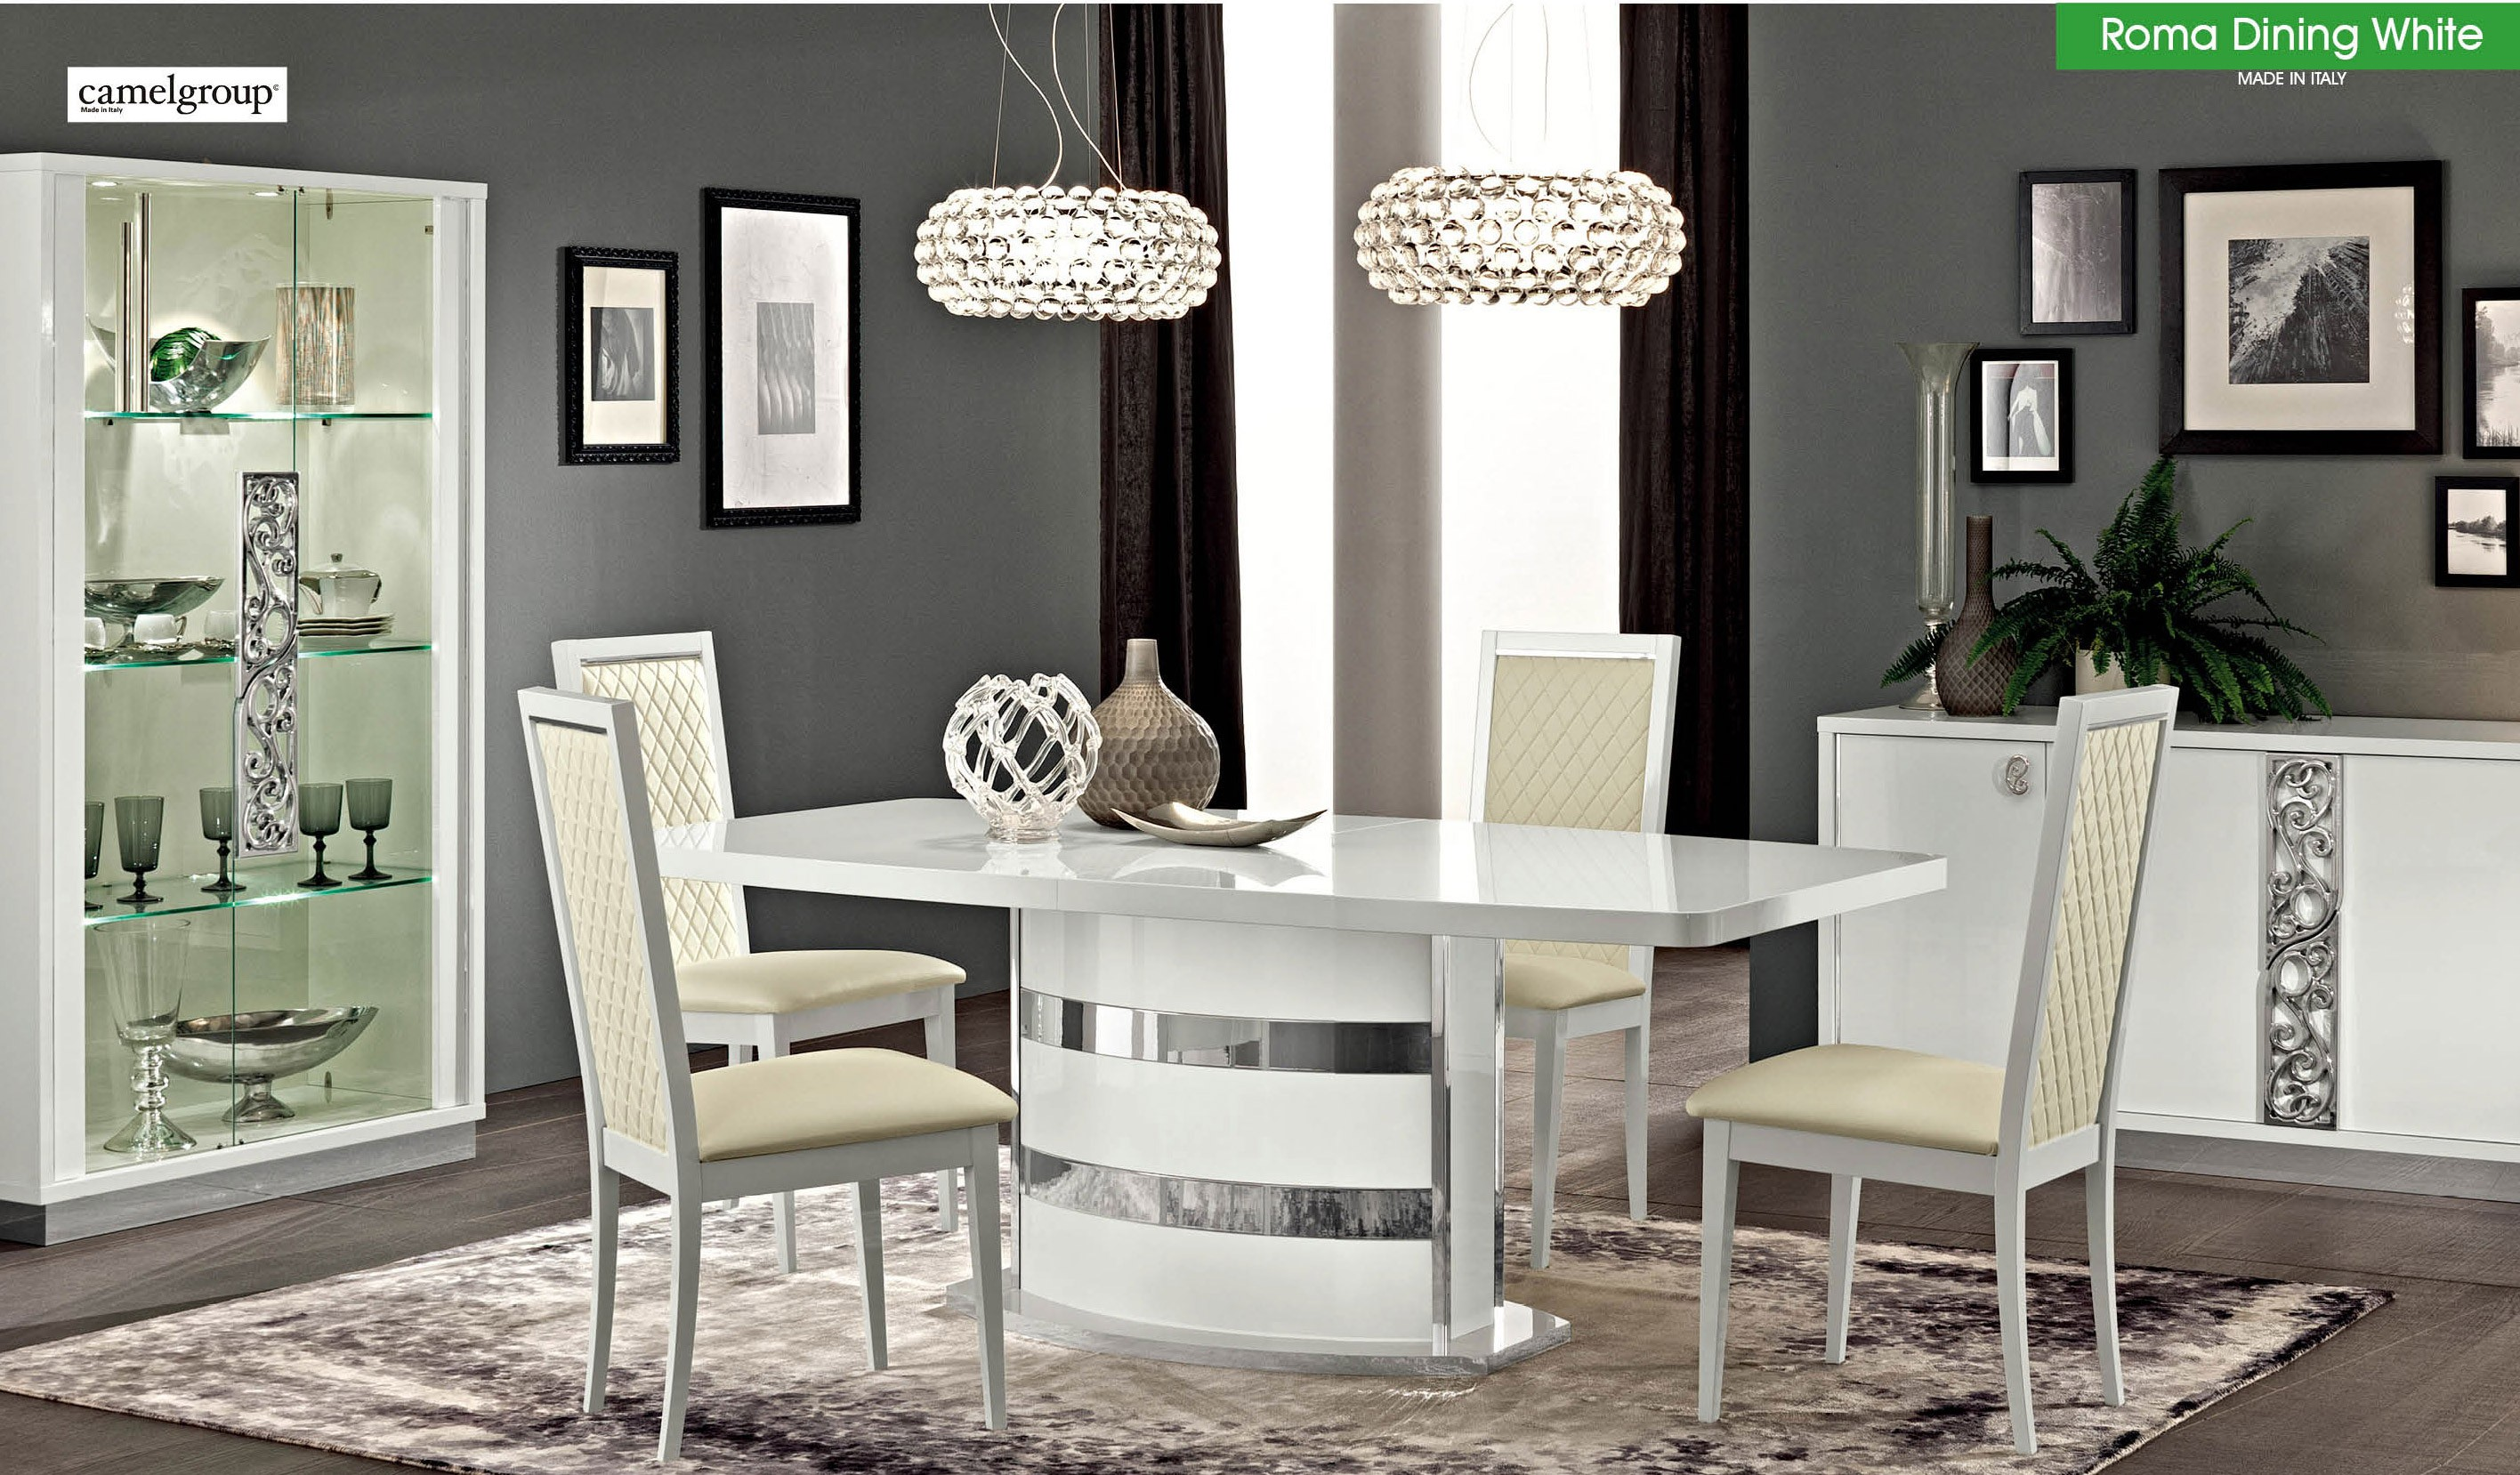 D313 Modern Dining Room Set In White Lacquer Finish: Roma Italian Dining Room Set In White Lacquer Finish